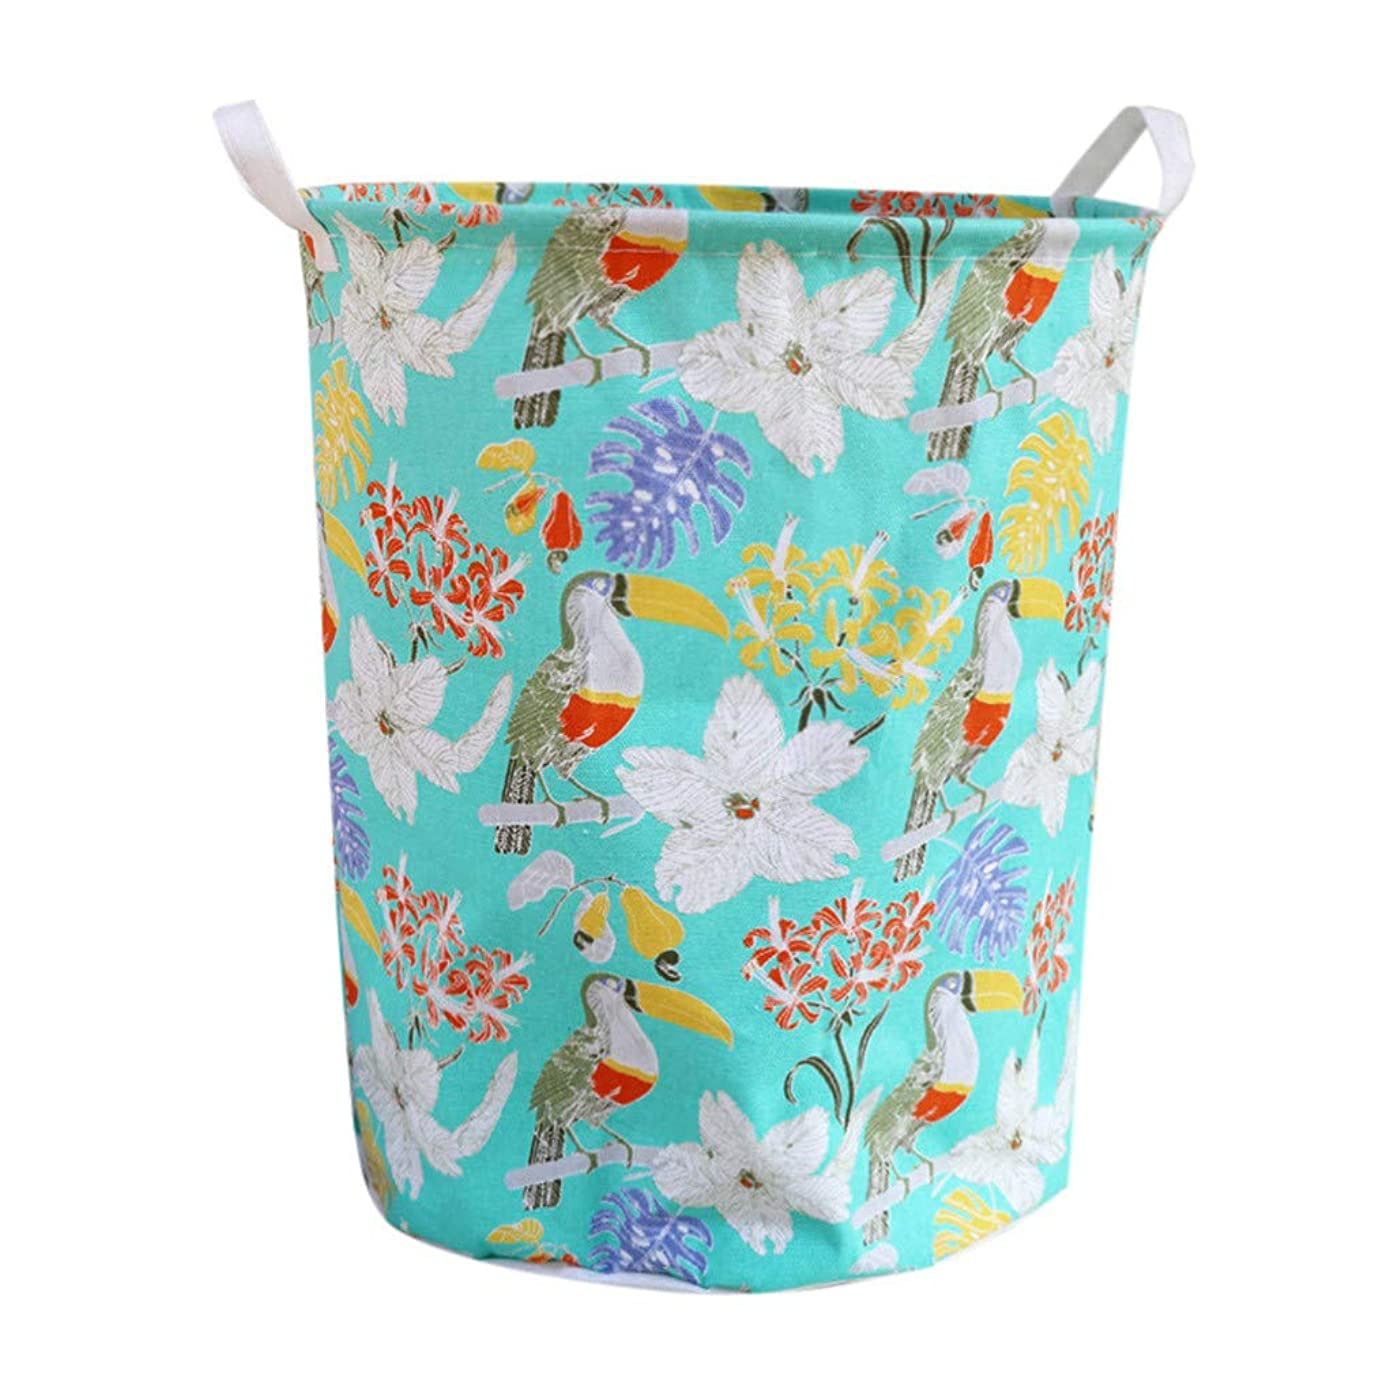 """Laundry Basket Bins,Amiley Waterproof Foldable Cotton Linen Laundry Hamper Bucket with Handles for Bathroom,Laundry Storage Baskets for Bedroom, Dorm, Laundry Hamper Bags, 15.7"""" x 19.7"""" (C)"""